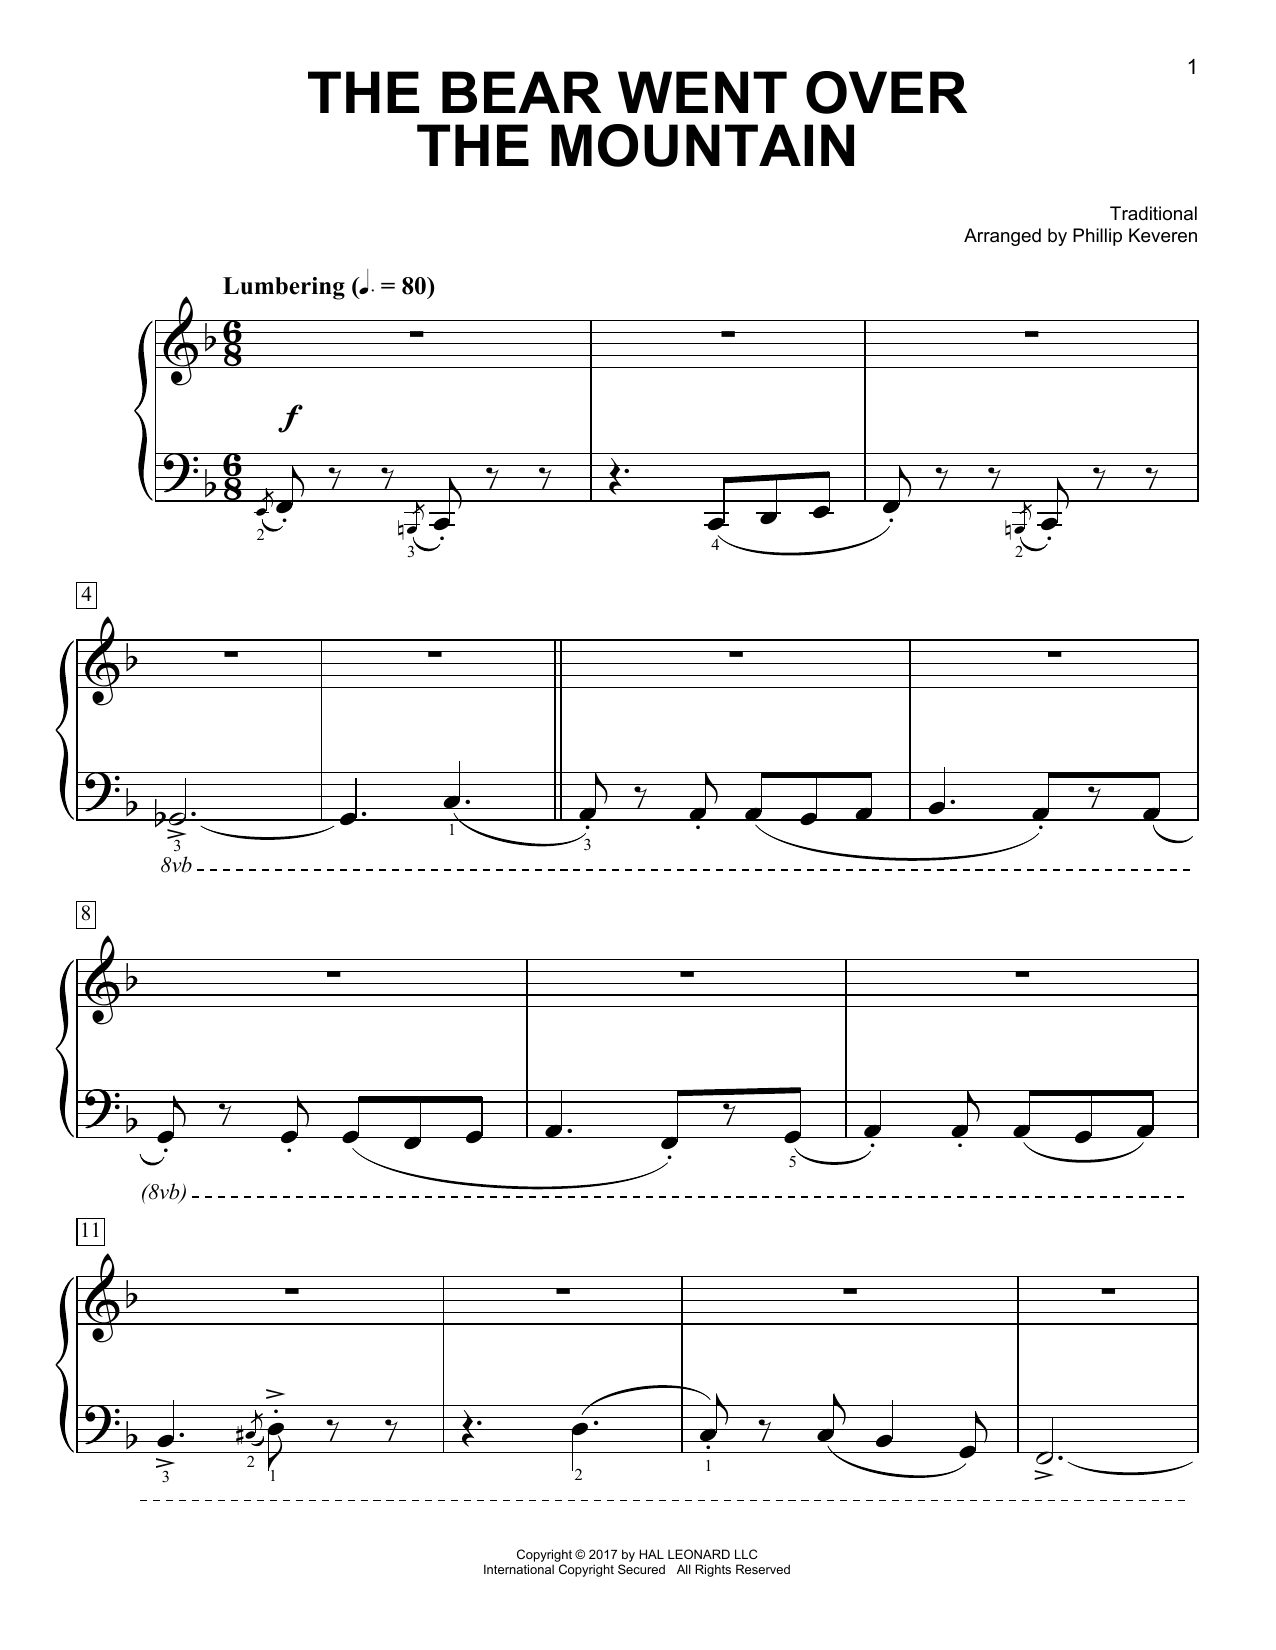 Traditional The Bear Went Over The Mountain [Classical version] (arr. Phillip Keveren) sheet music notes and chords. Download Printable PDF.